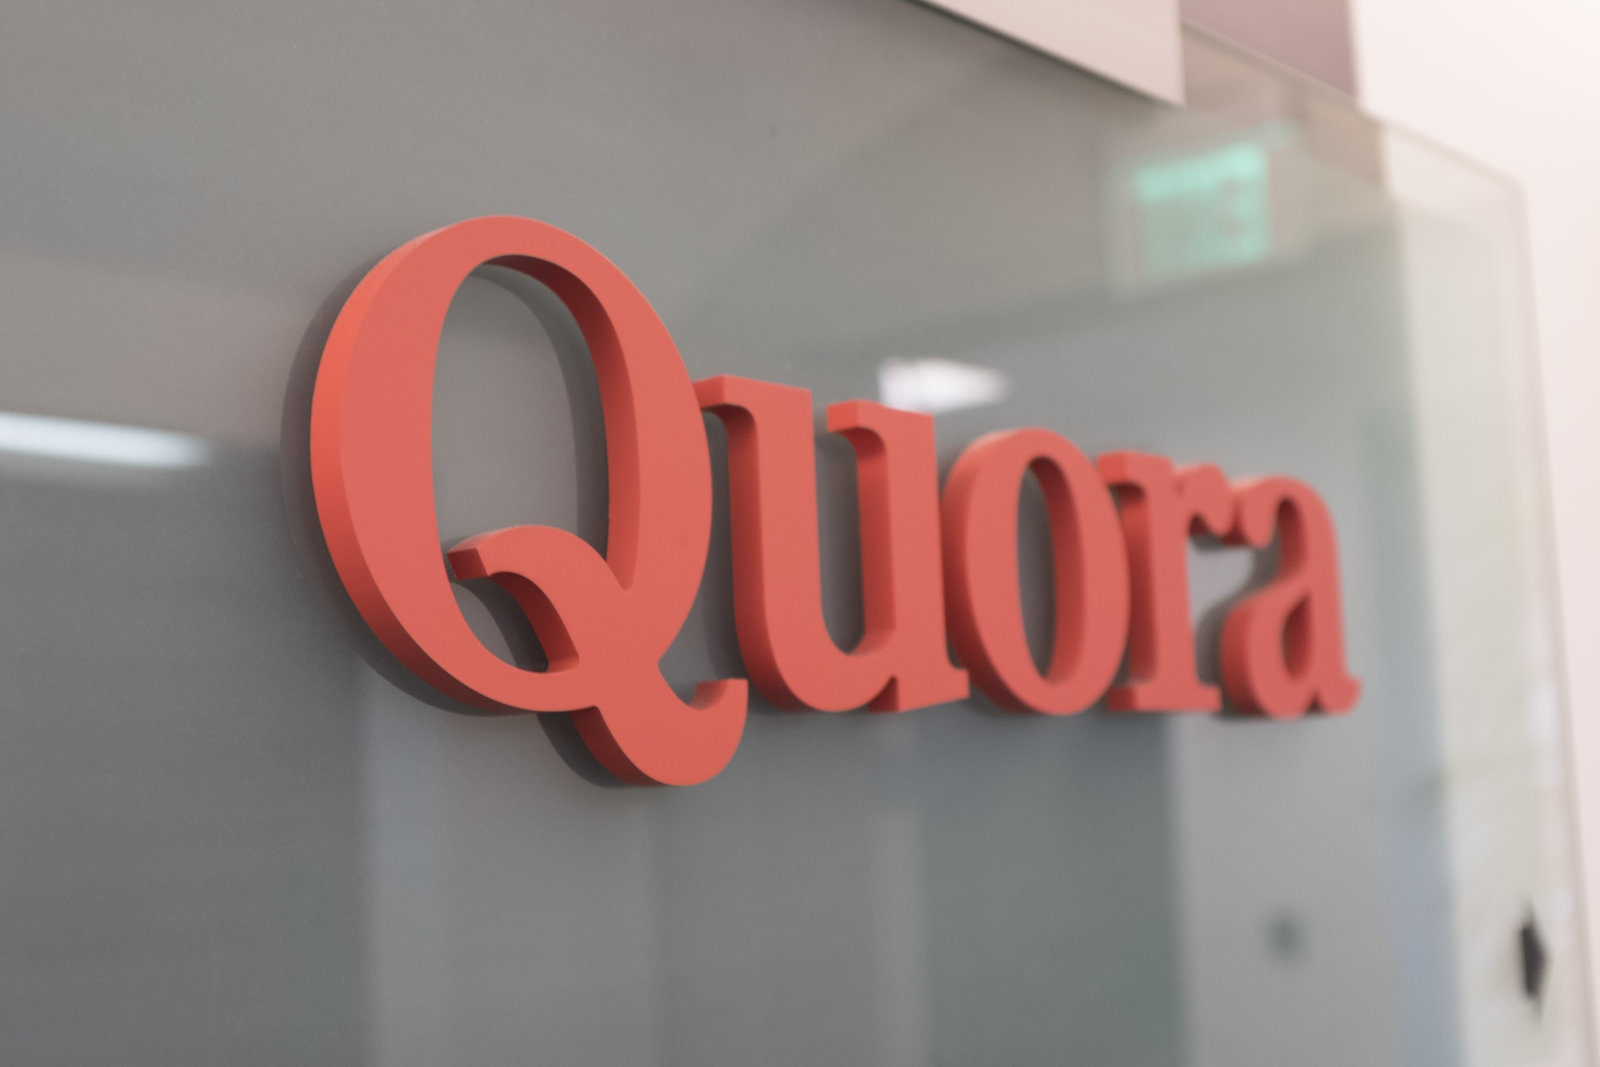 Quora breach leaks data on over 100 million users | DeviceDaily.com